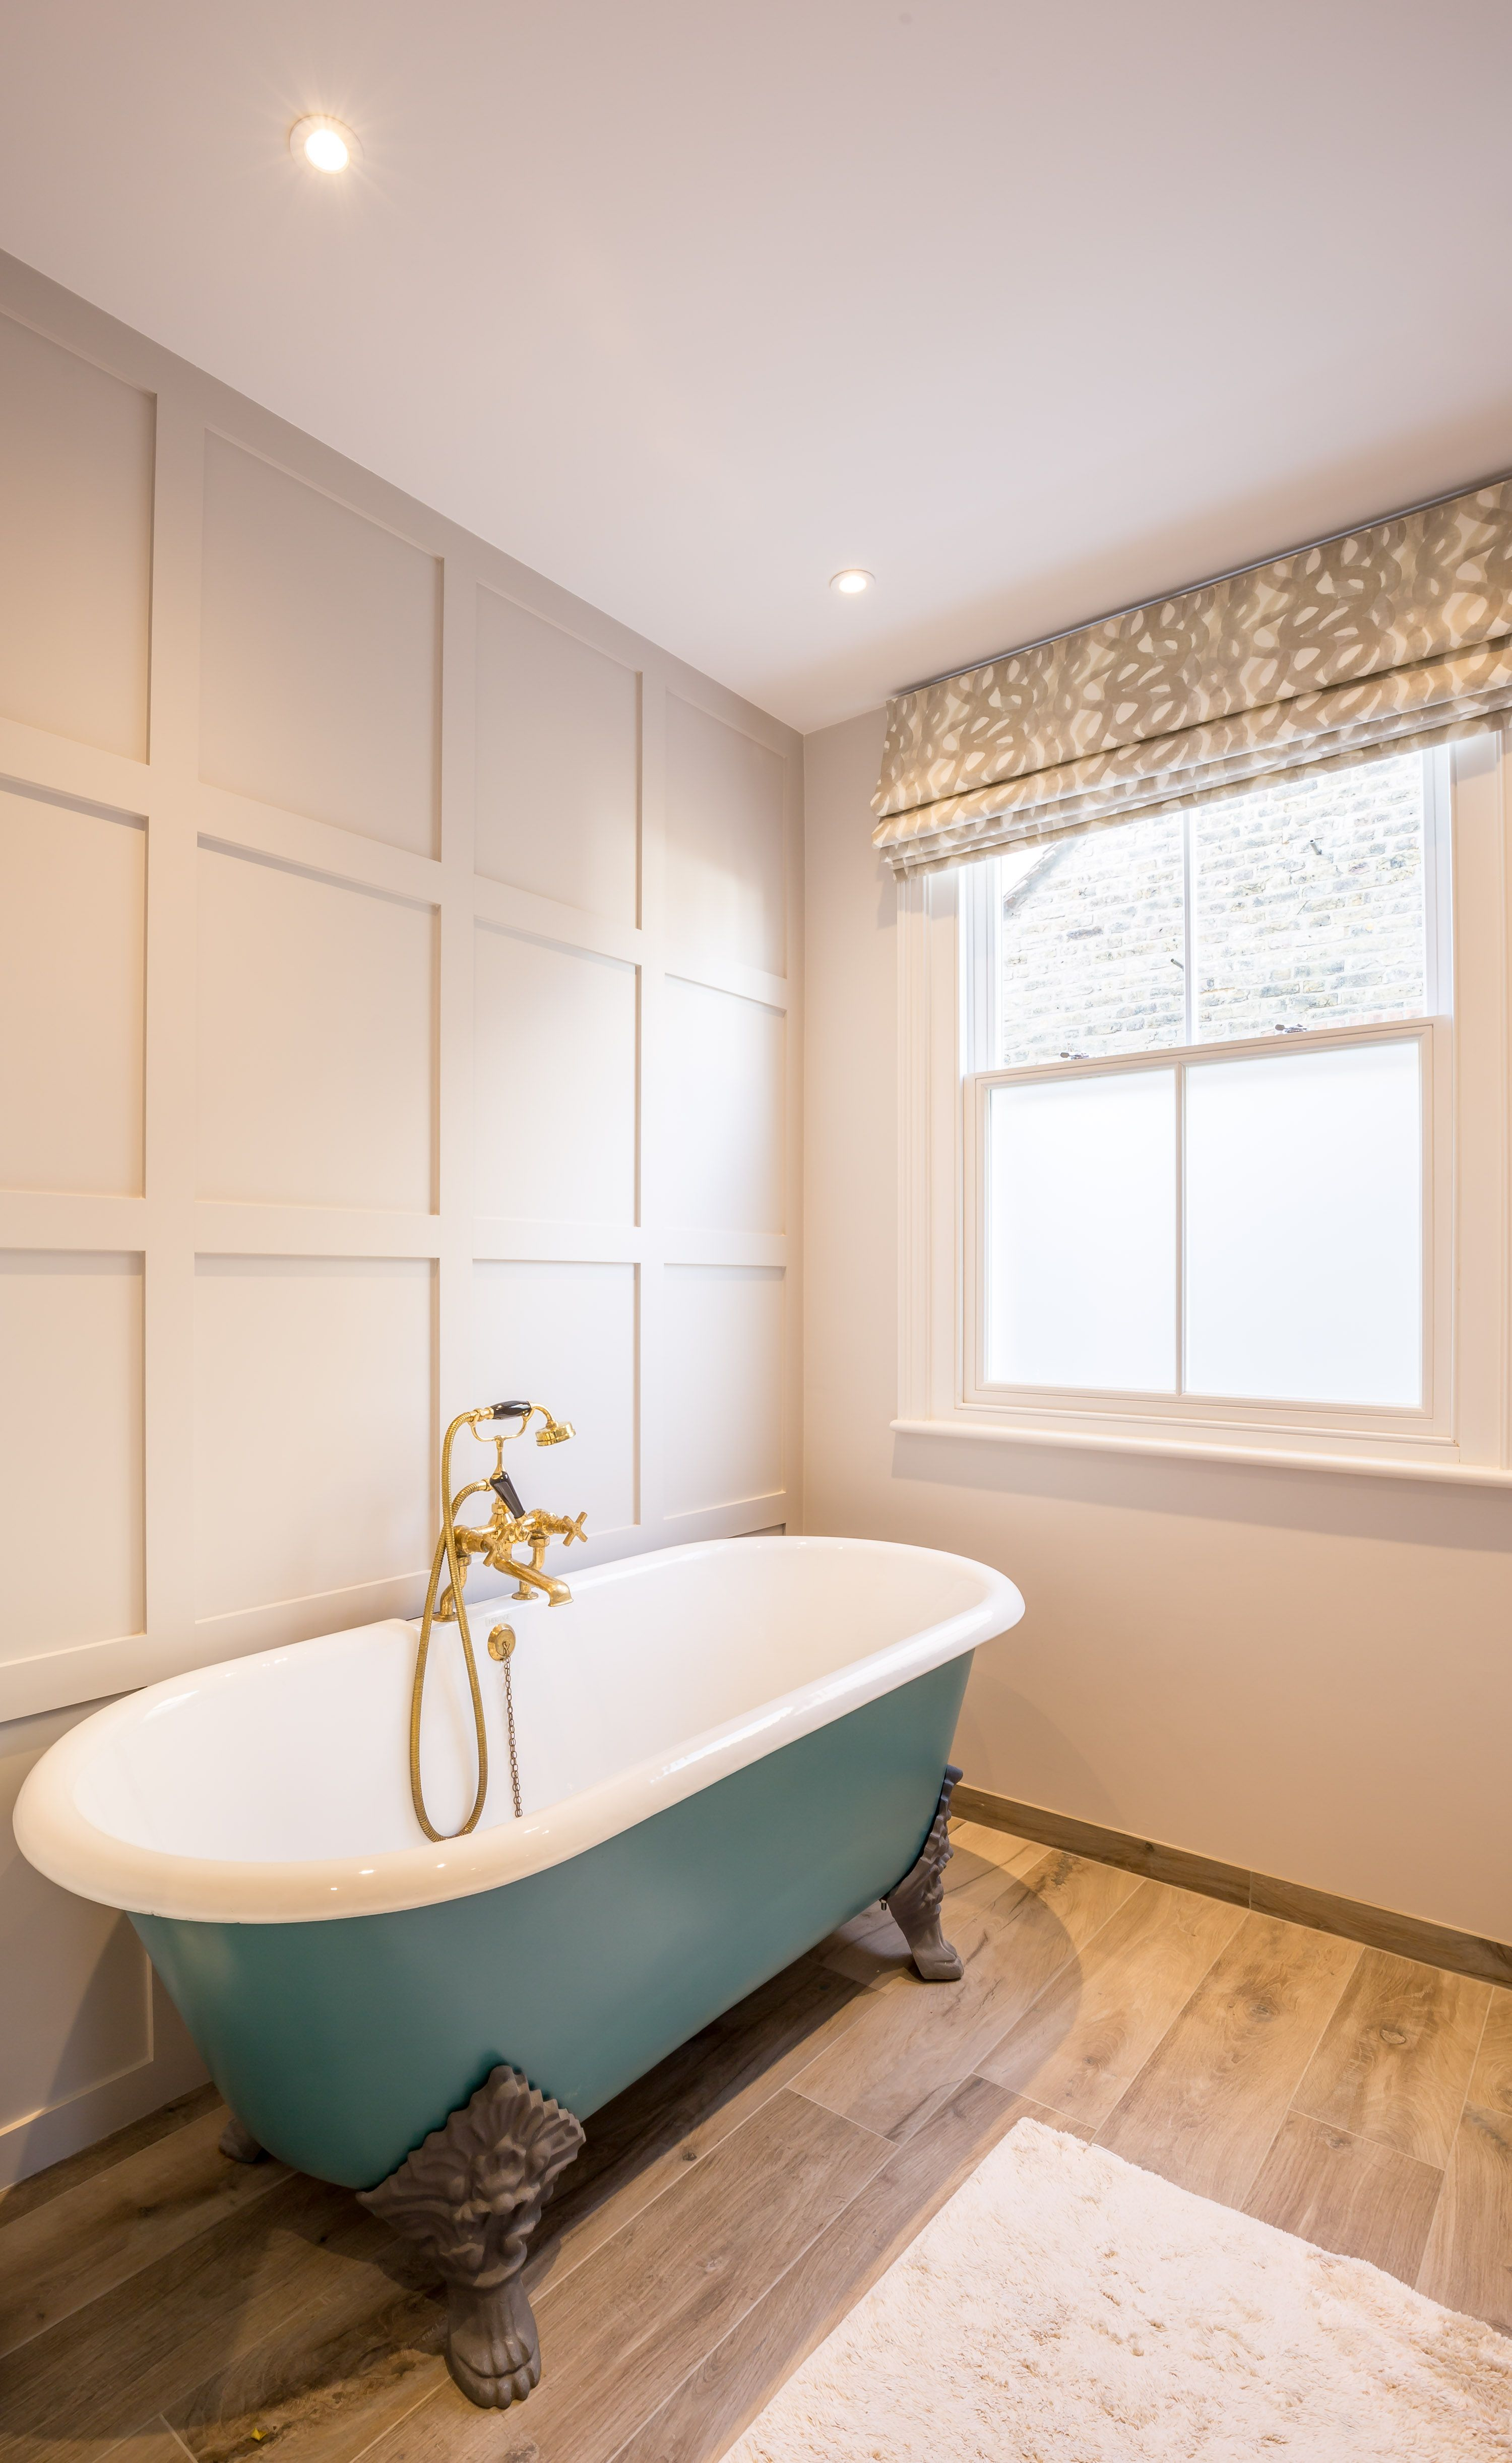 Ensuite Bathroom Without Window master bedroom ensuite | victorian property renovation | roll tub